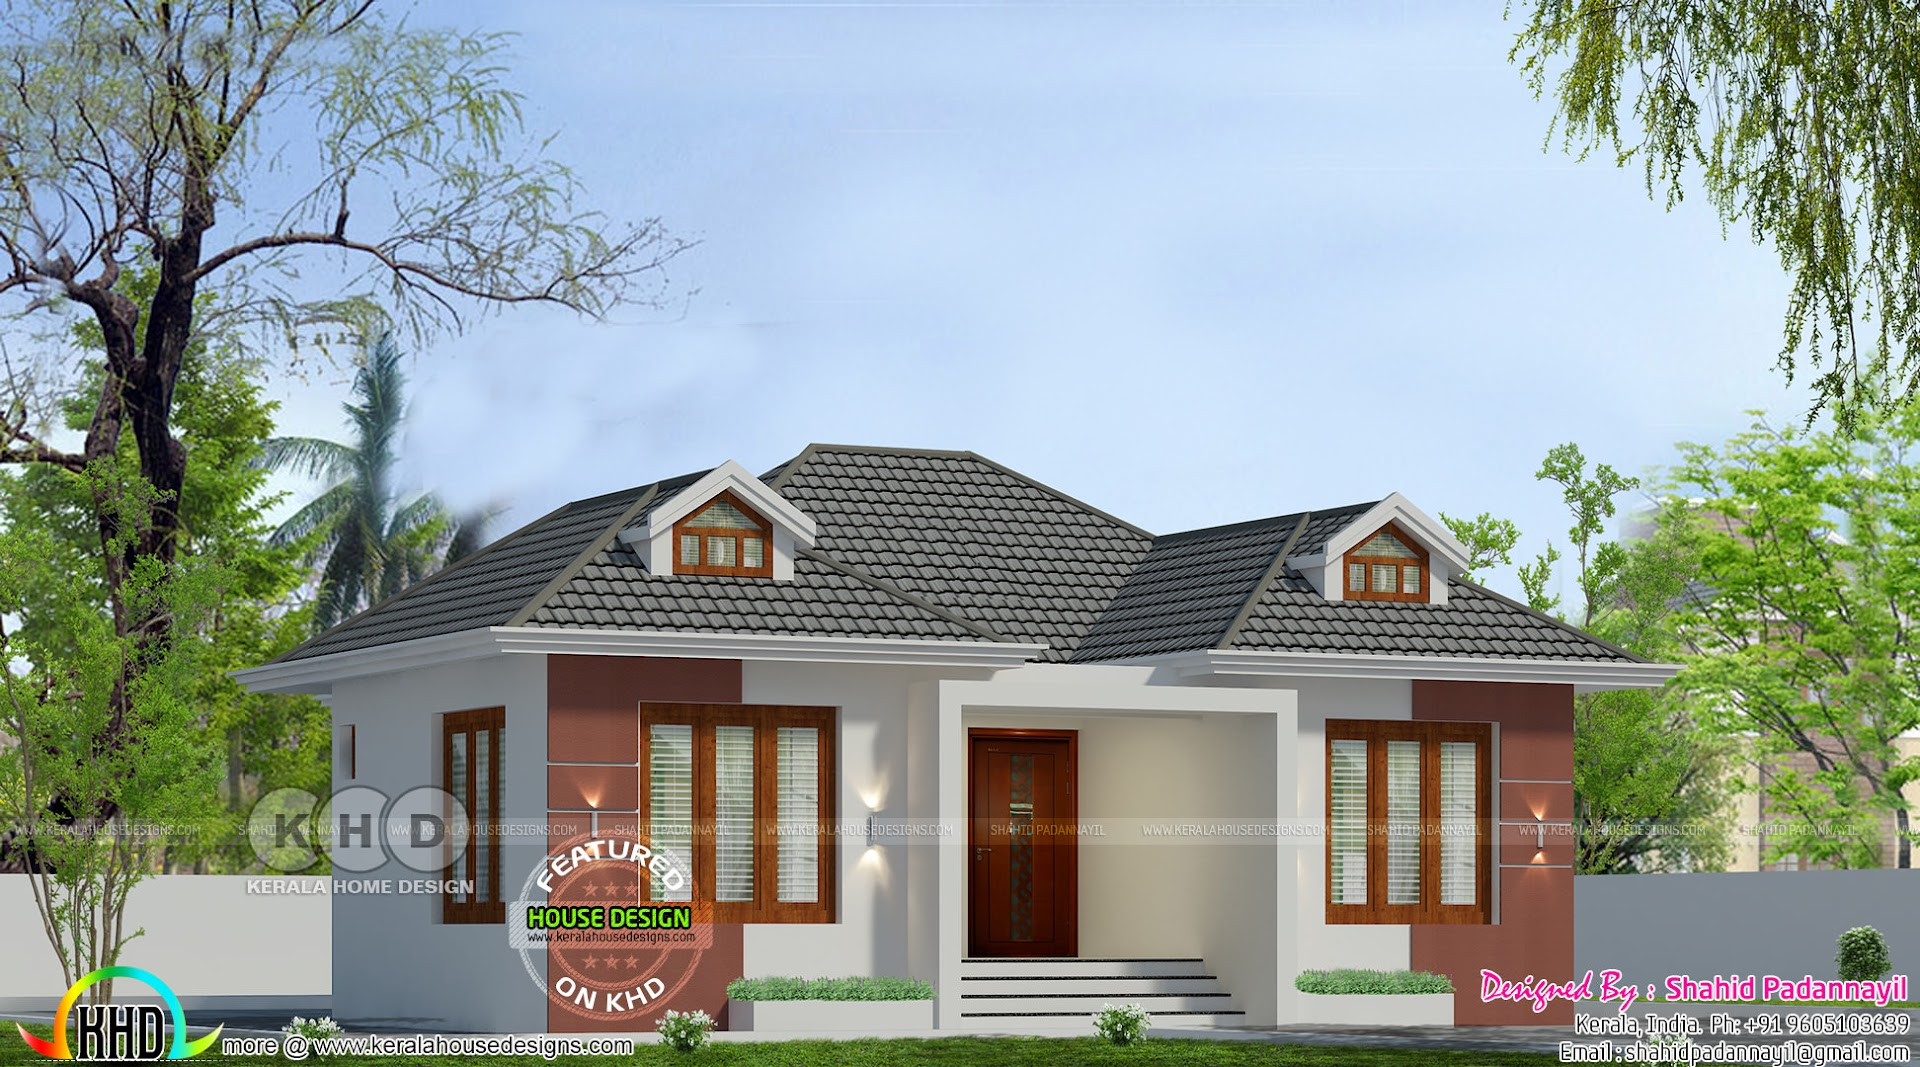 Low Cost 4 Bedroom Kerala House Plan With Elevation: Cute Low Cost 2 Bedroom House